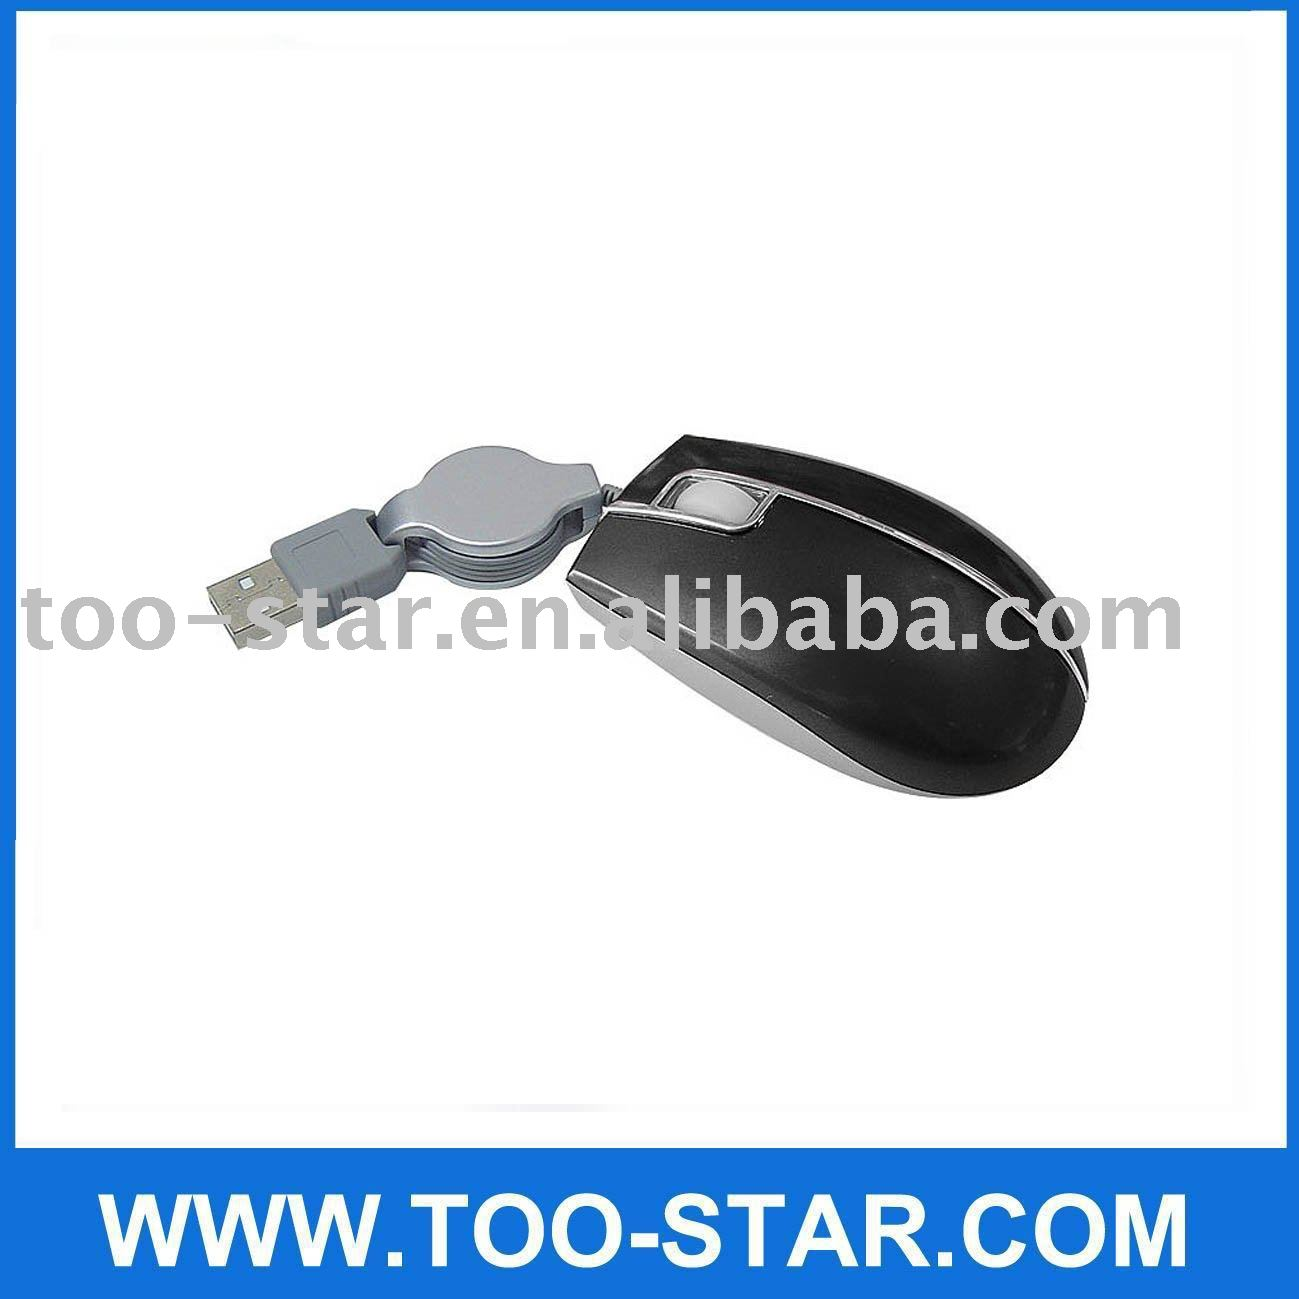 MINI USB optical mouse with retractable cable for notebook laptop pc mice